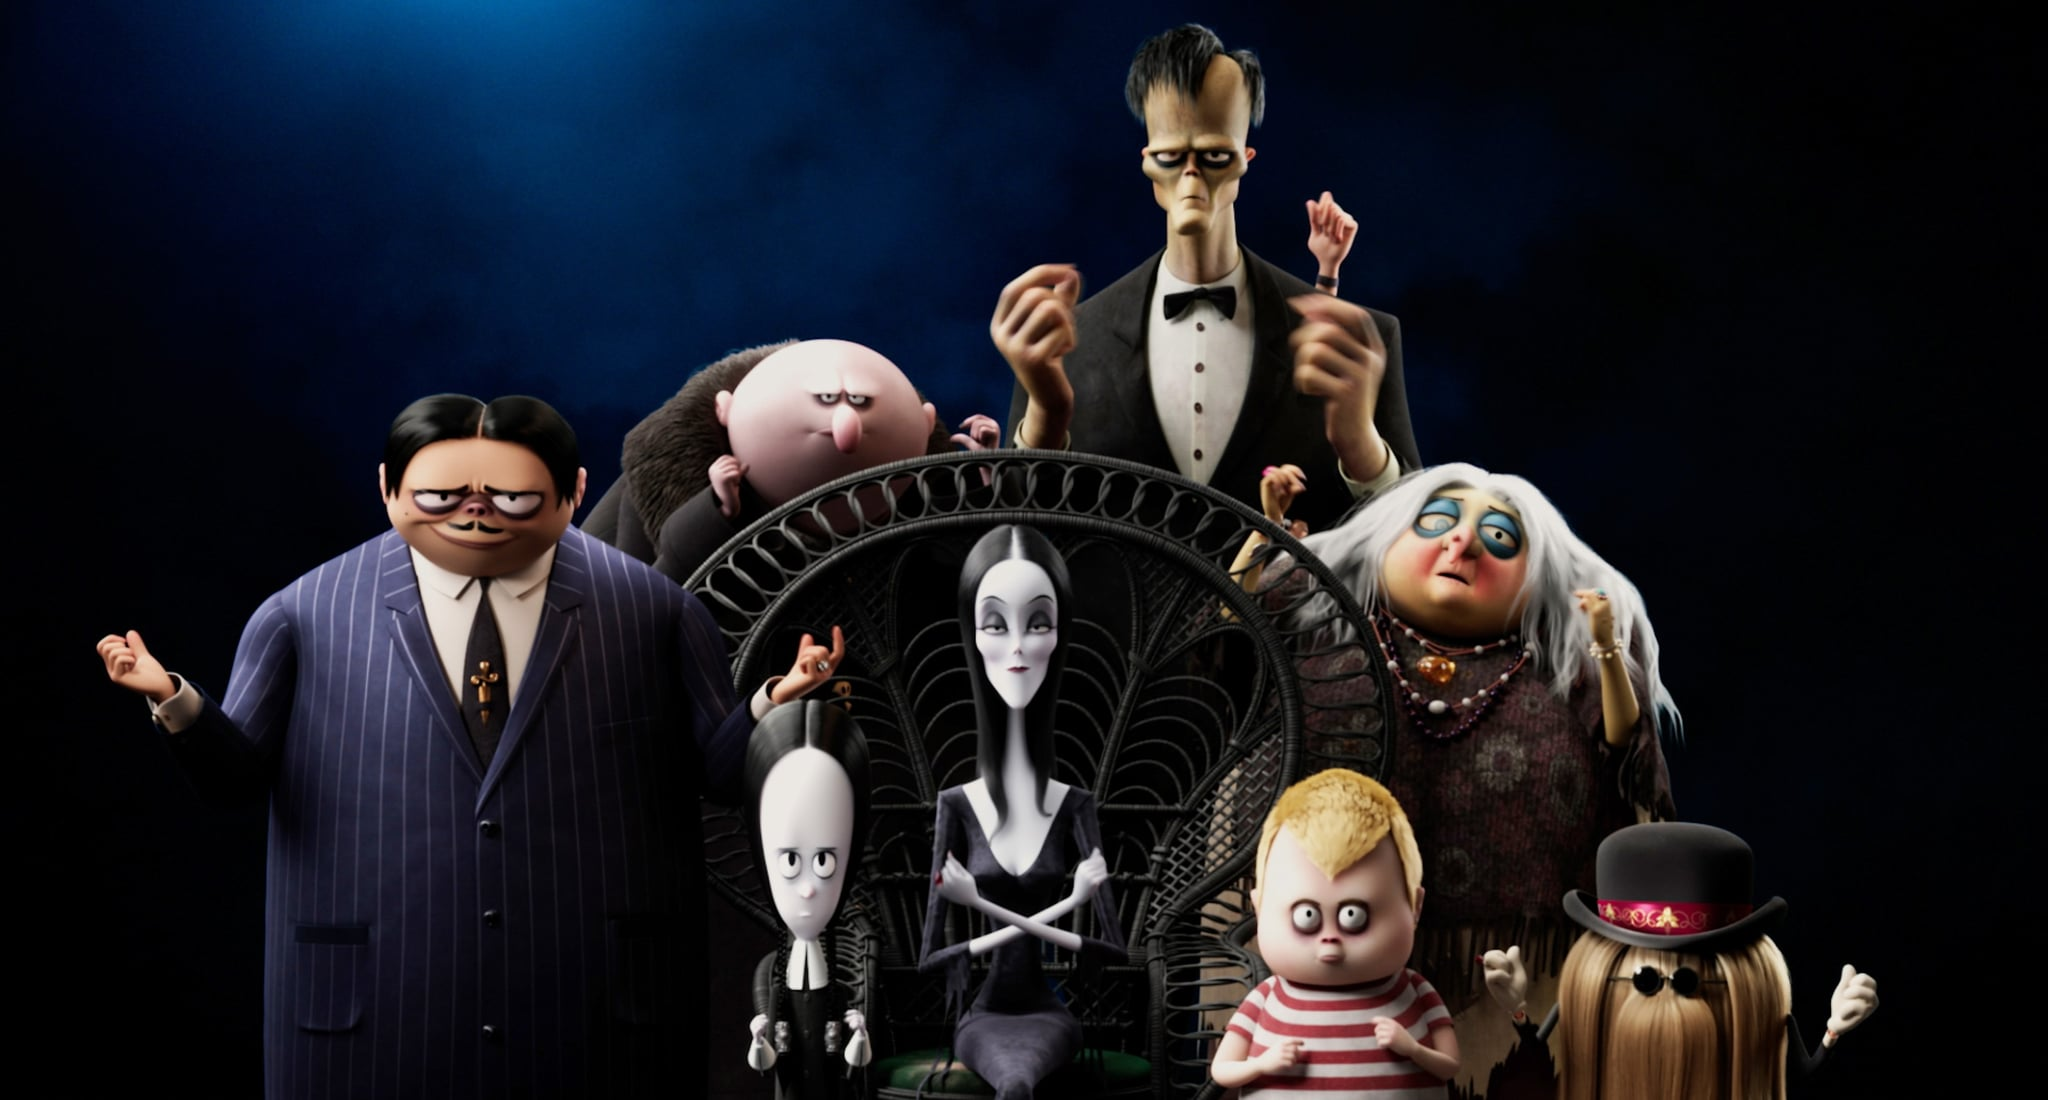 THE ADDAMS FAMILY 2, back row from left: Uncle Fester (voice: Nick Kroll), Lurch (voice: Conrad Vernon), Thing, Grandma (voice: Bette Midler); front row from left: Gomez Addams (voice: Oscar Isaac), Wednesday Addams (voice: Chloe Grace Moretz), Morticia Addams (voice: Charlize Theron), Pugsley Addams (voice: Javon 'Wanna' Walton), Cousin It (voice: Snoop Dogg), 2021.  MGM / courtesy Everett Collection